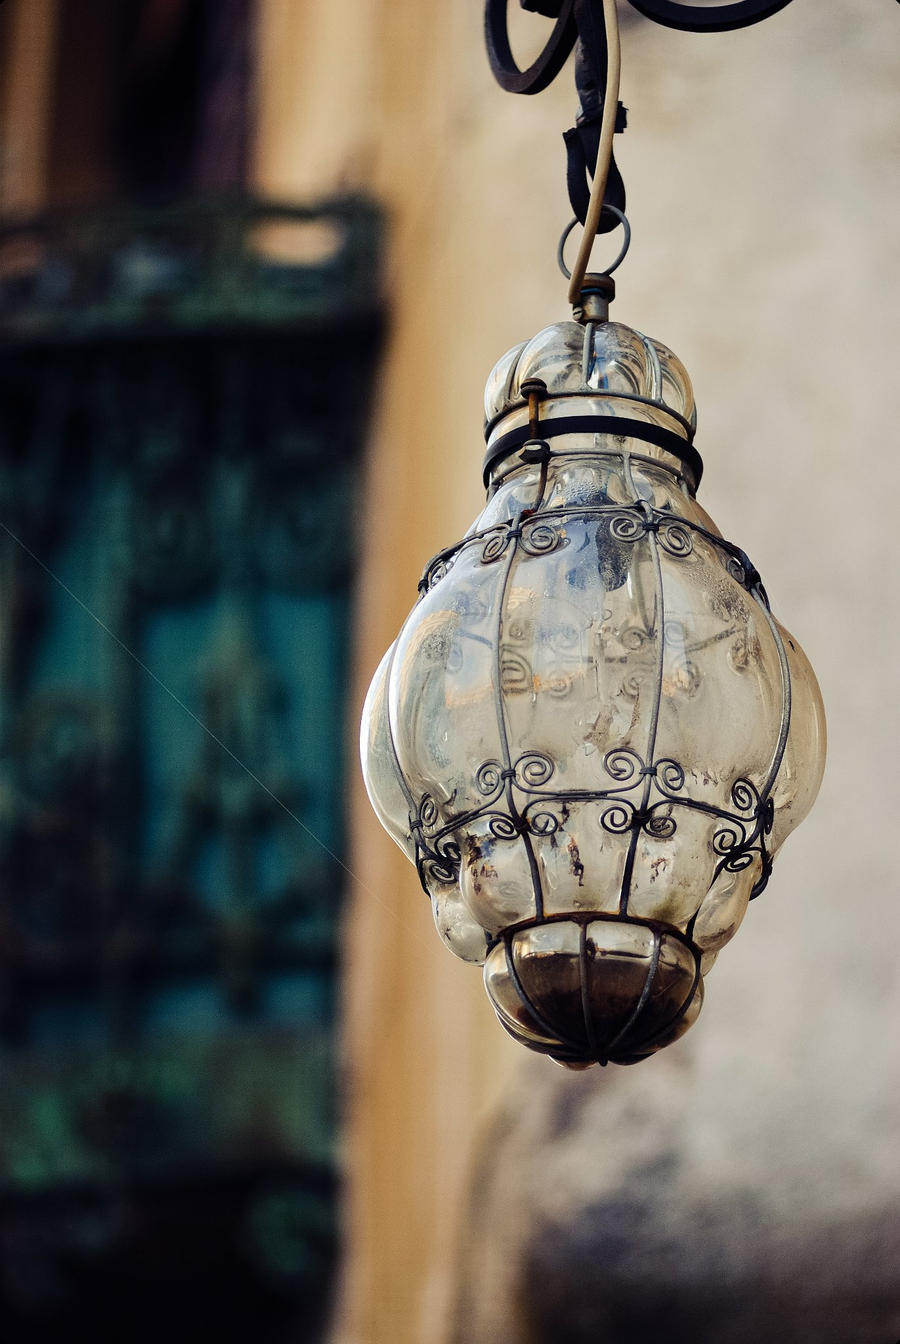 Vintage street lamp by diapozitive on DeviantArt for Street Lamps Photography  55dqh